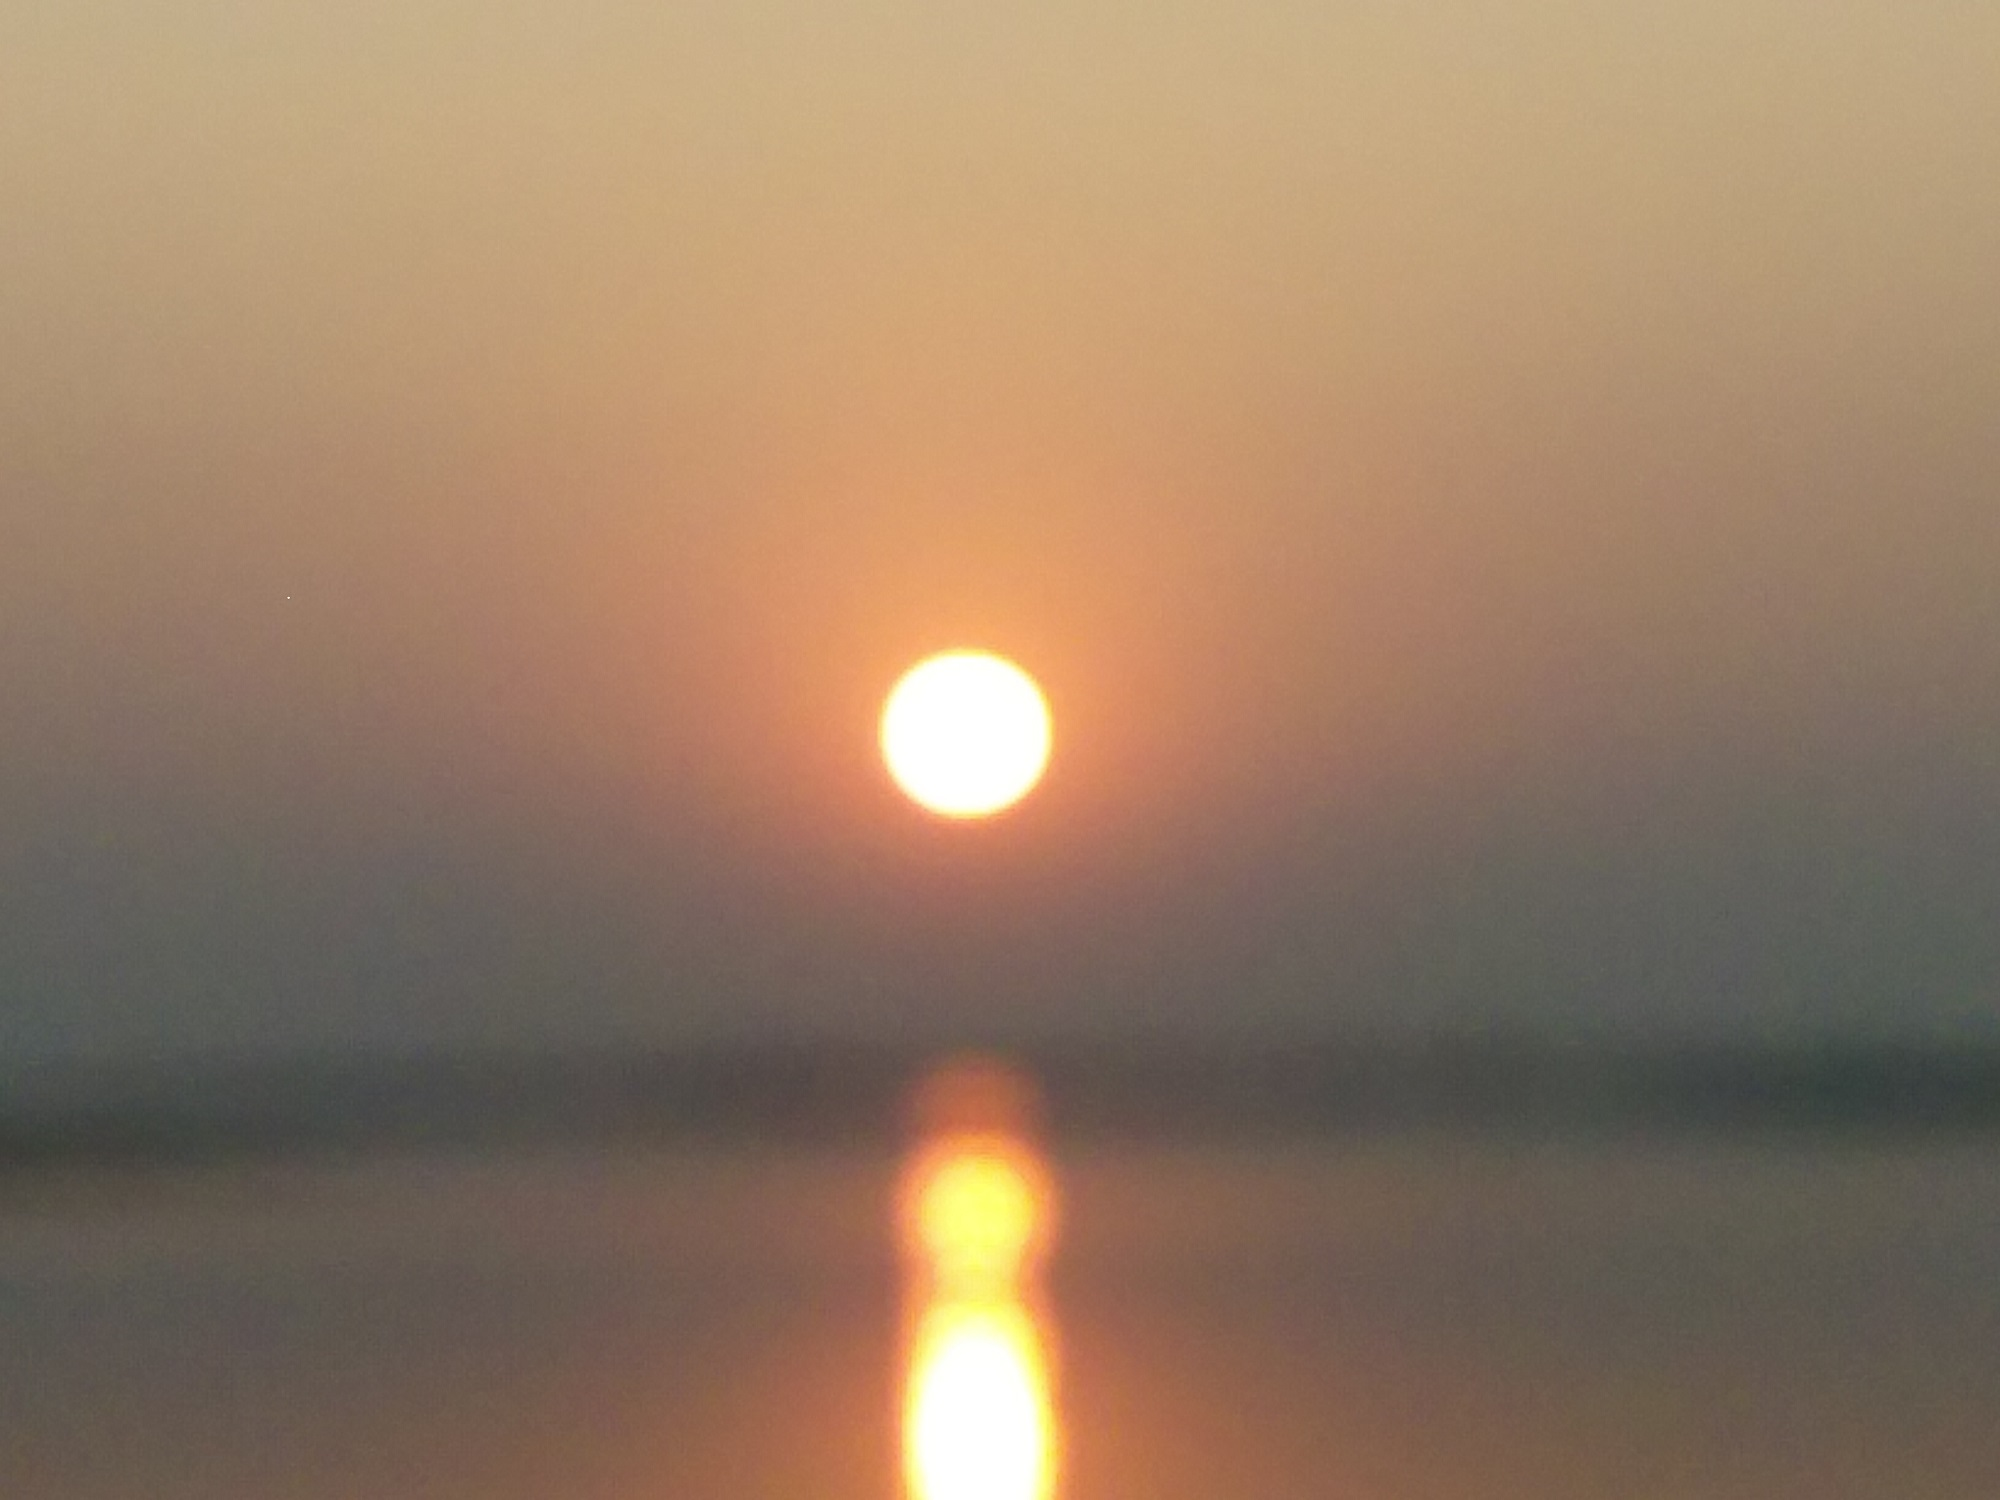 This is capture at Ganga river on sunset. It is a sign of peace, after daylong work or journey. It has the power to change, OUR MIND.